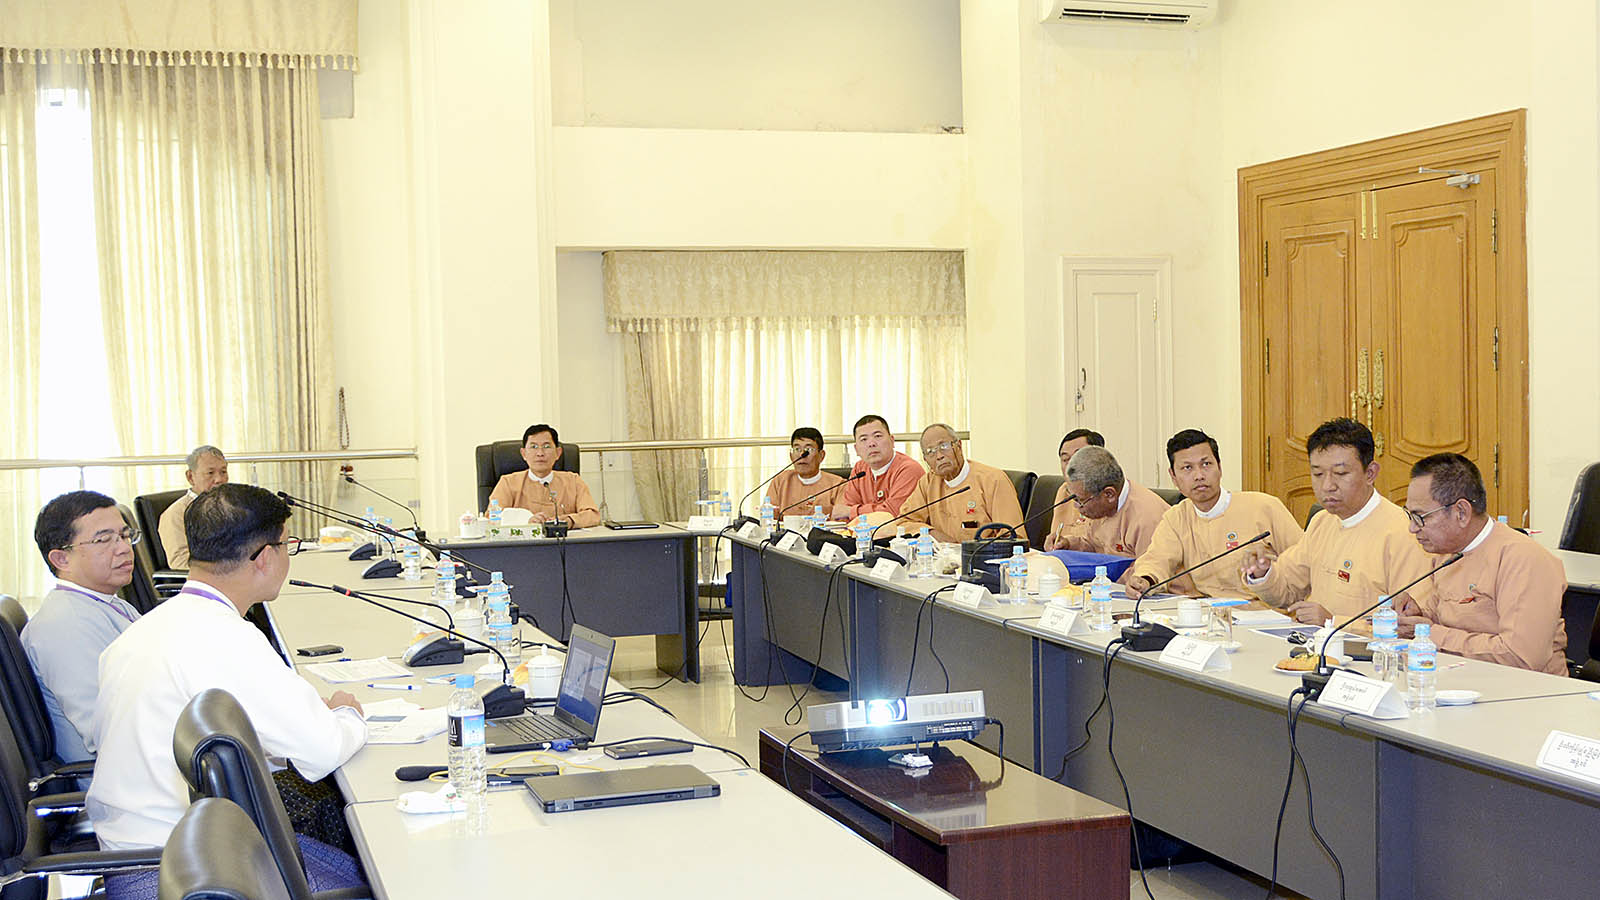 Pyithu Hluttaw's Electricity and Energy Development Committee Chairman U Kyi Moe Naing meets with Total E&P Myanmar delegation in Nay Pyi Taw yesterday. Photo: MNA